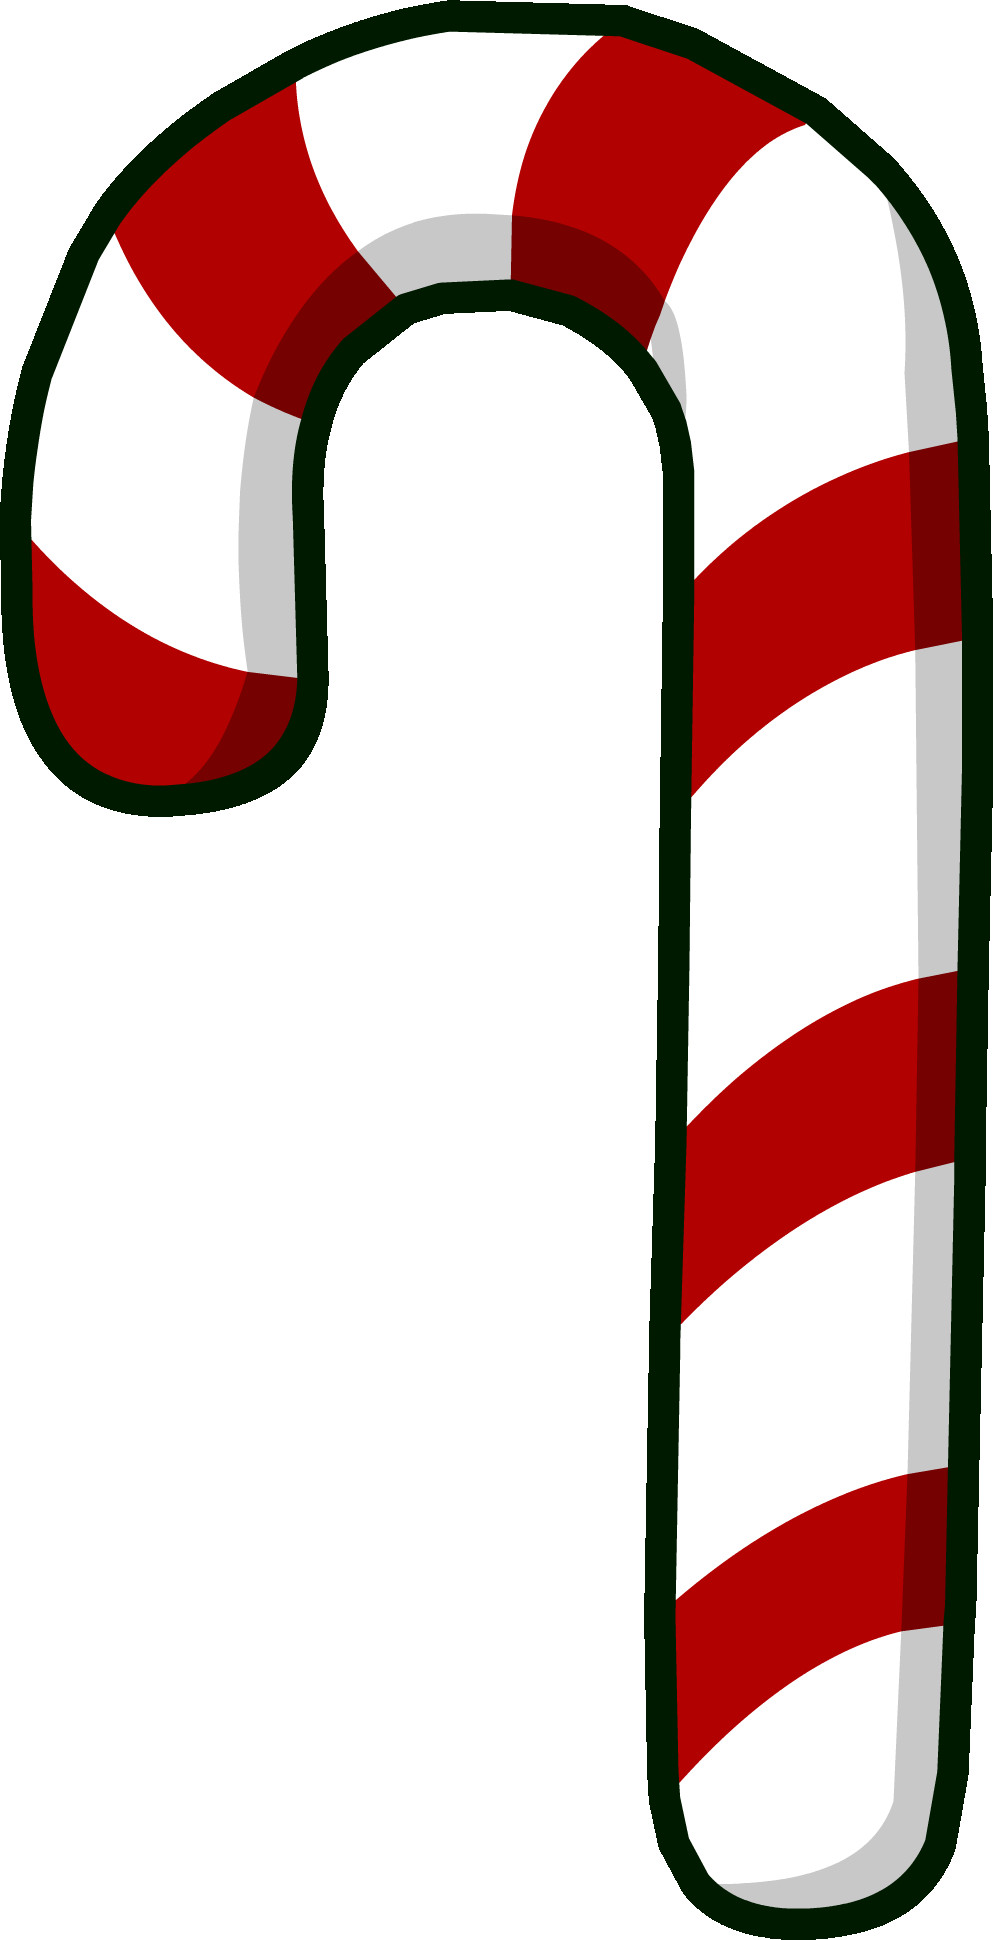 candy cane clipart at getdrawings com free for personal use candy rh getdrawings com candy cane clipart border free candy cane clipart free download